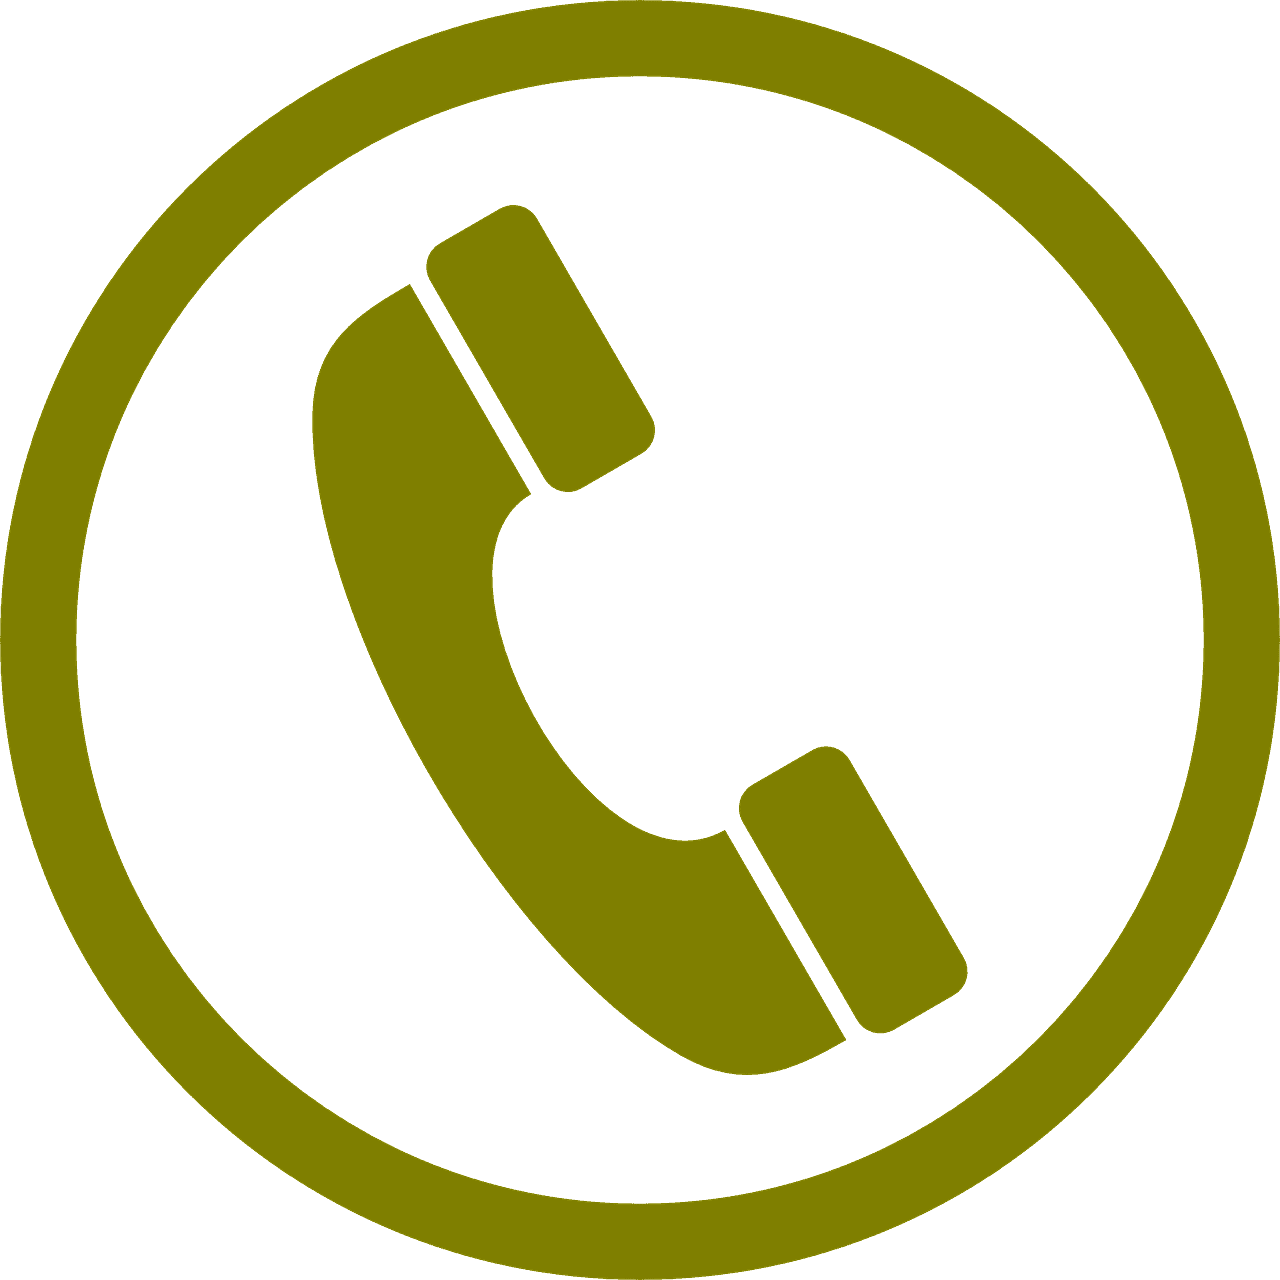 telephone, call, symbol